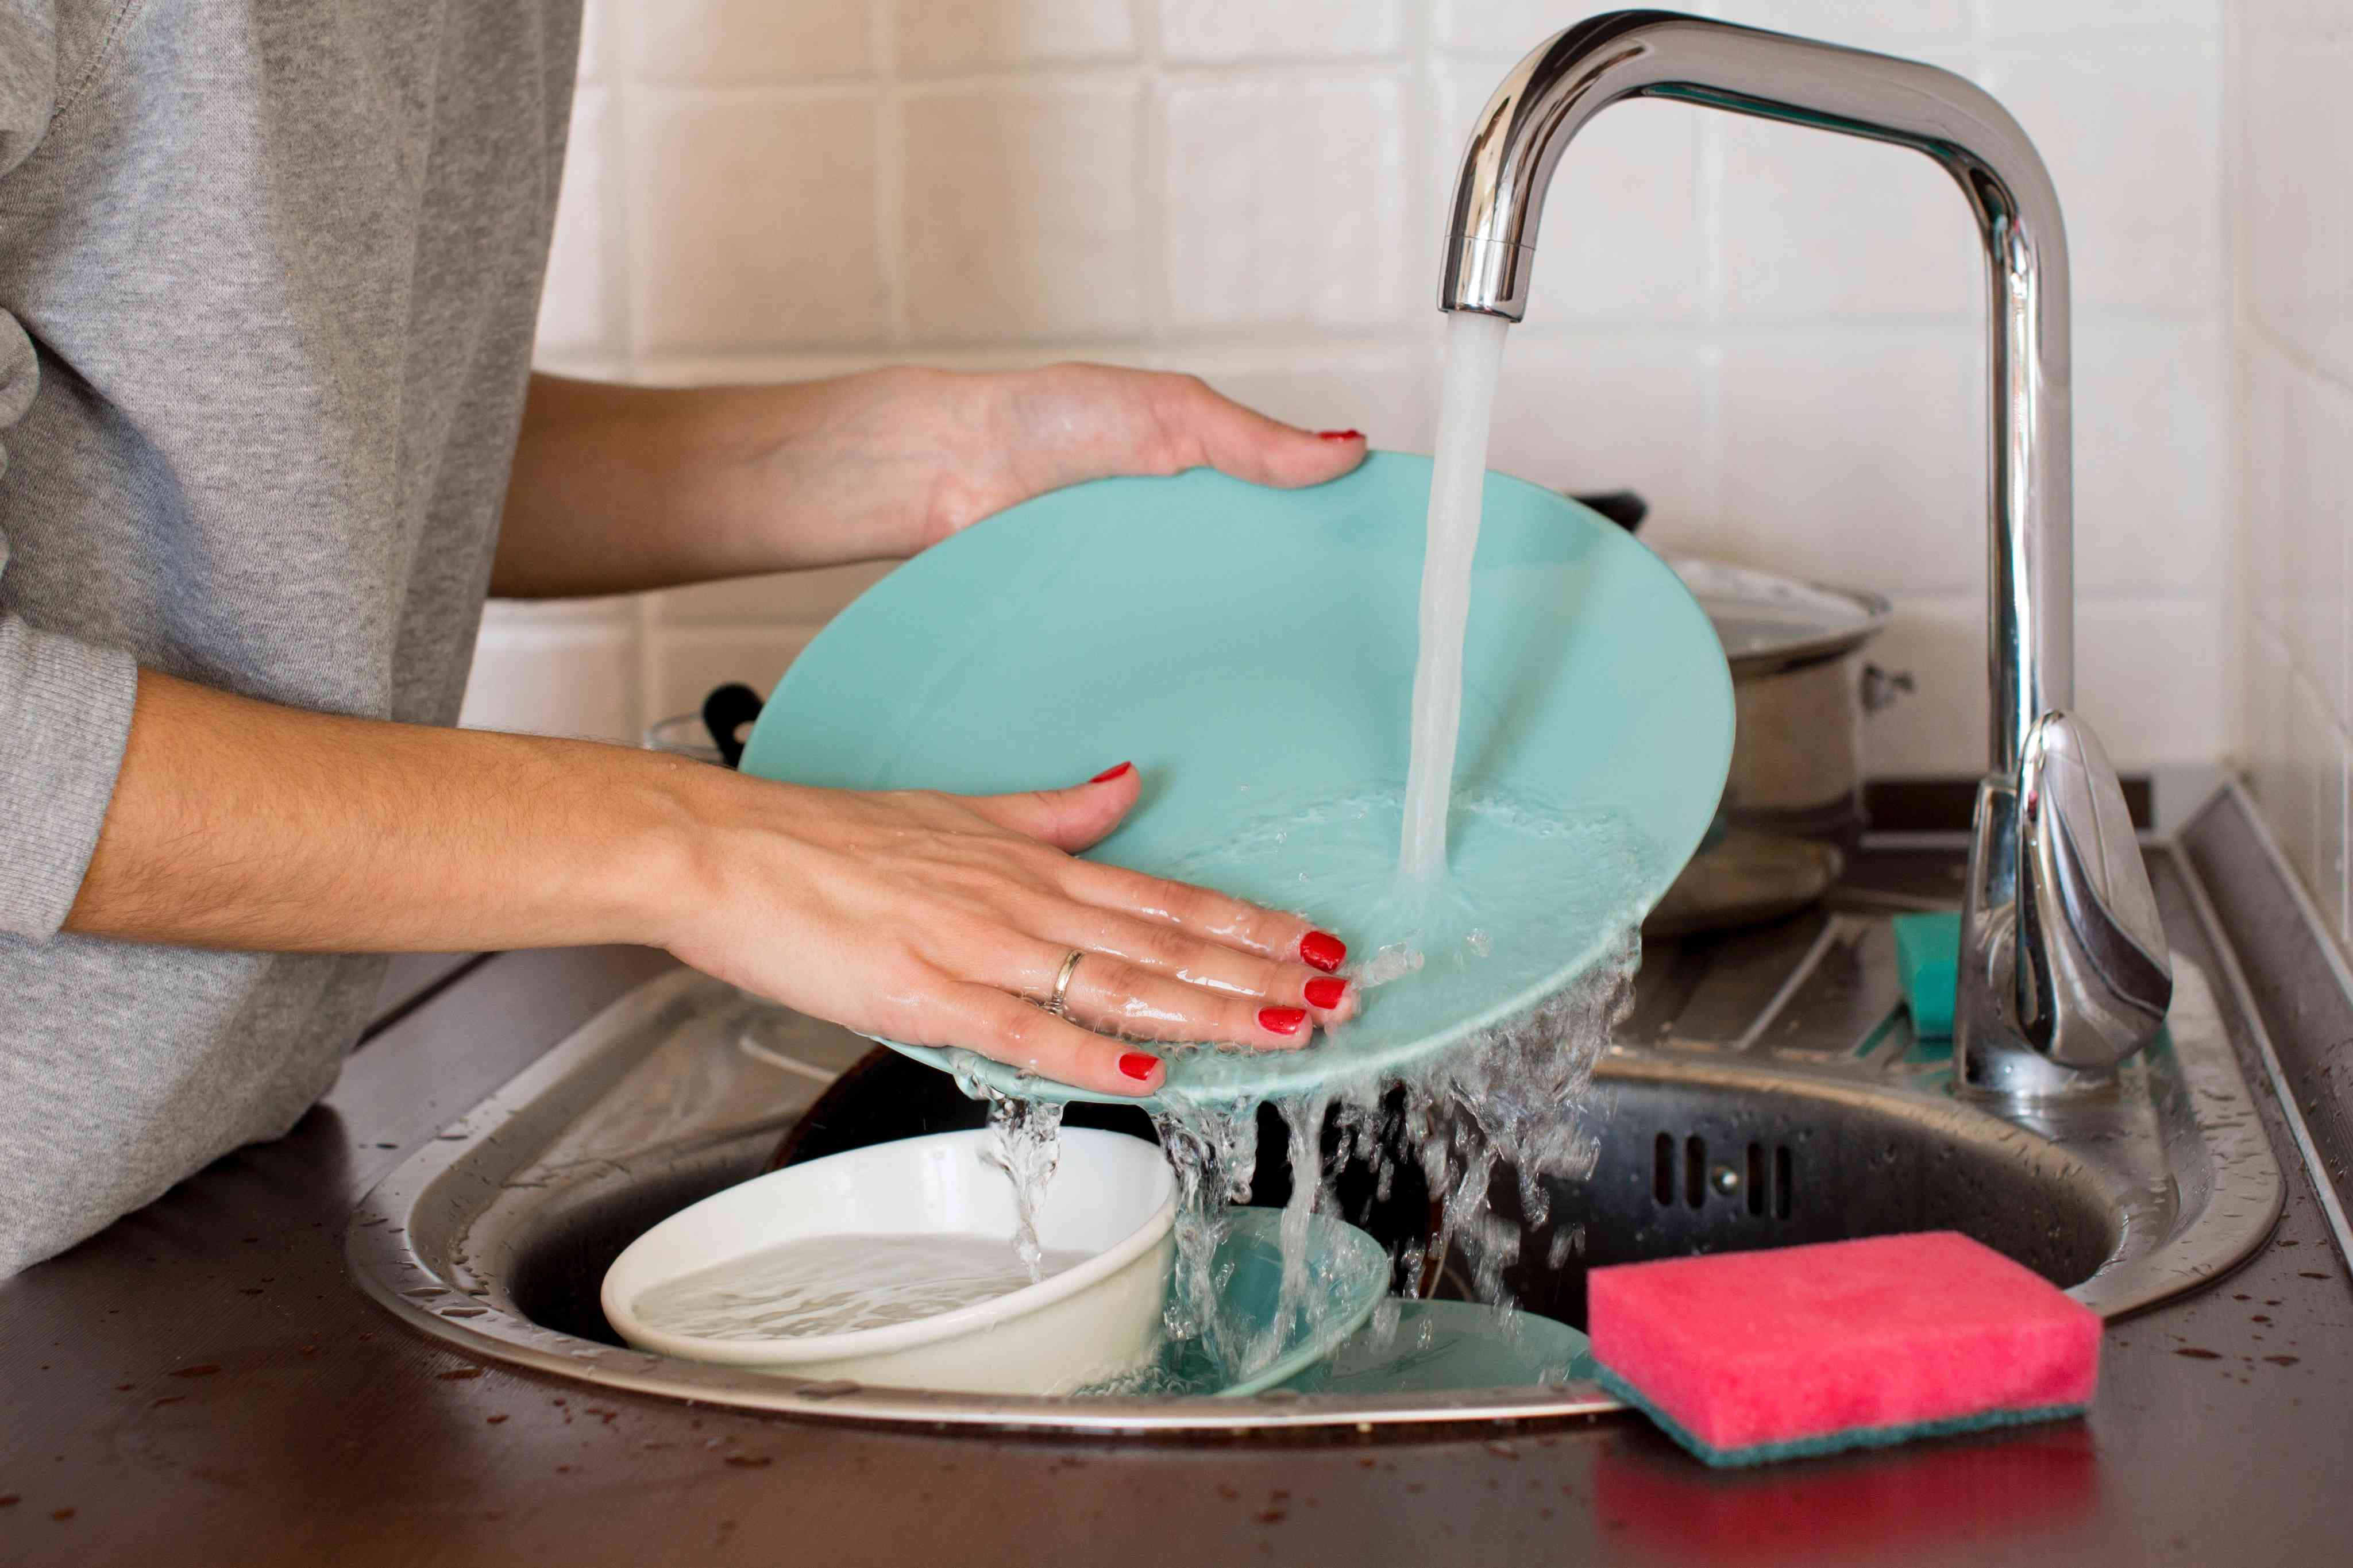 A woman rinsing dishes in the sink